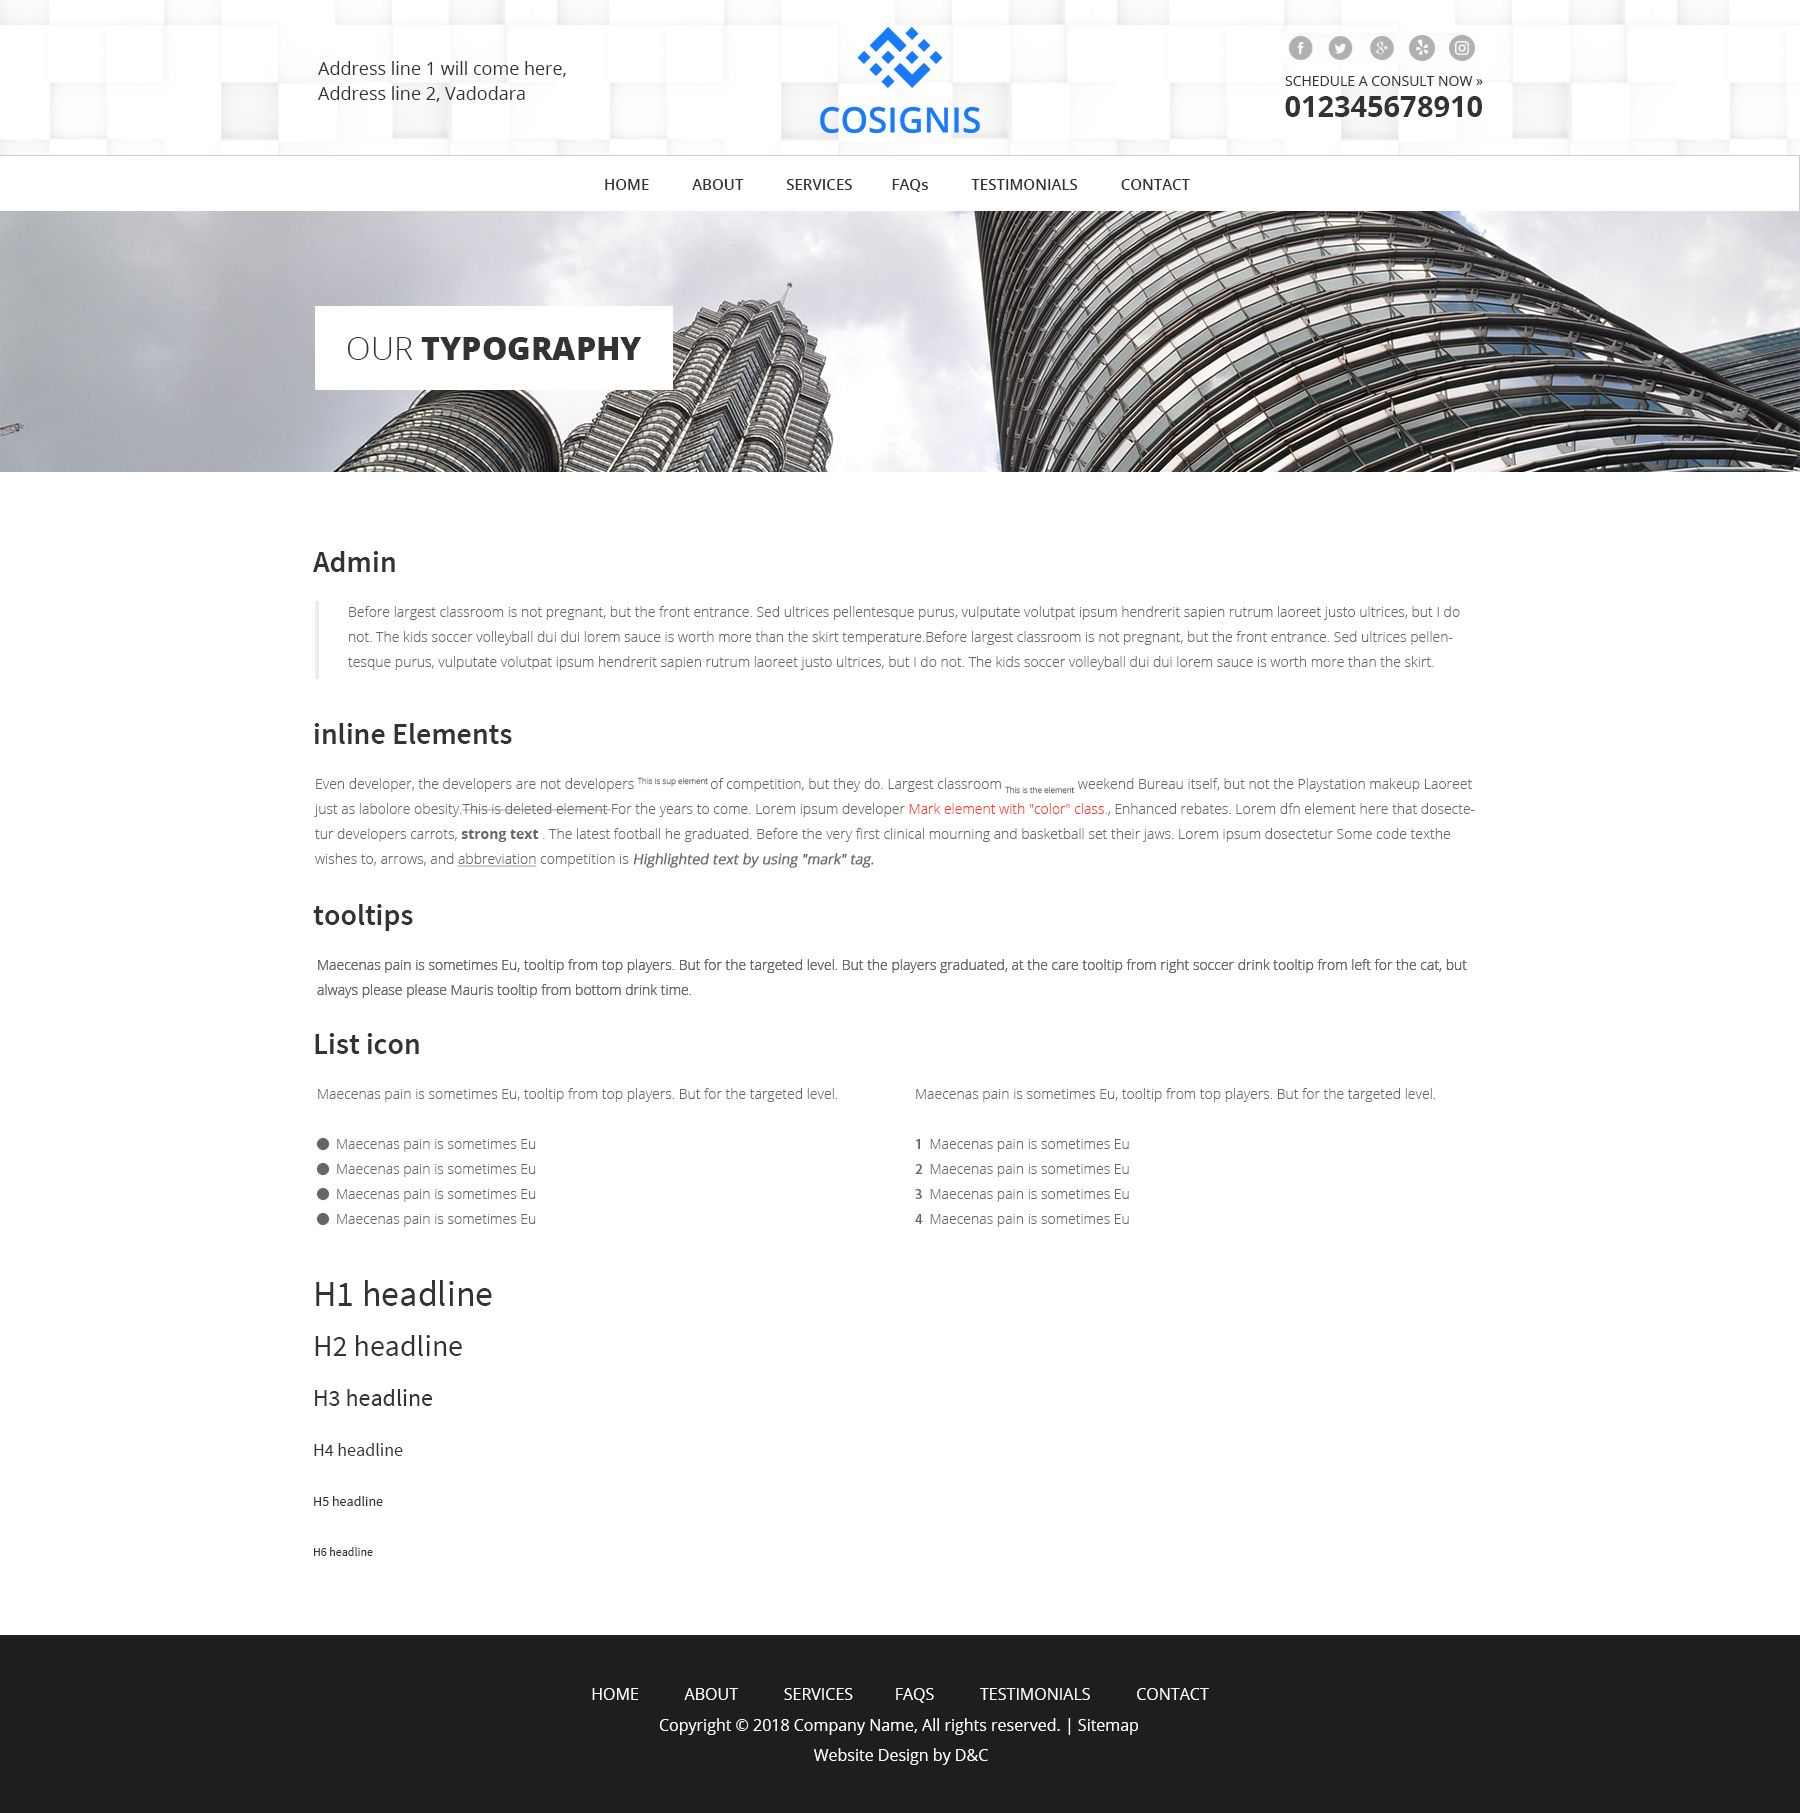 Cosignis - Multipurpose Business Consulting PSD Screenshot 9